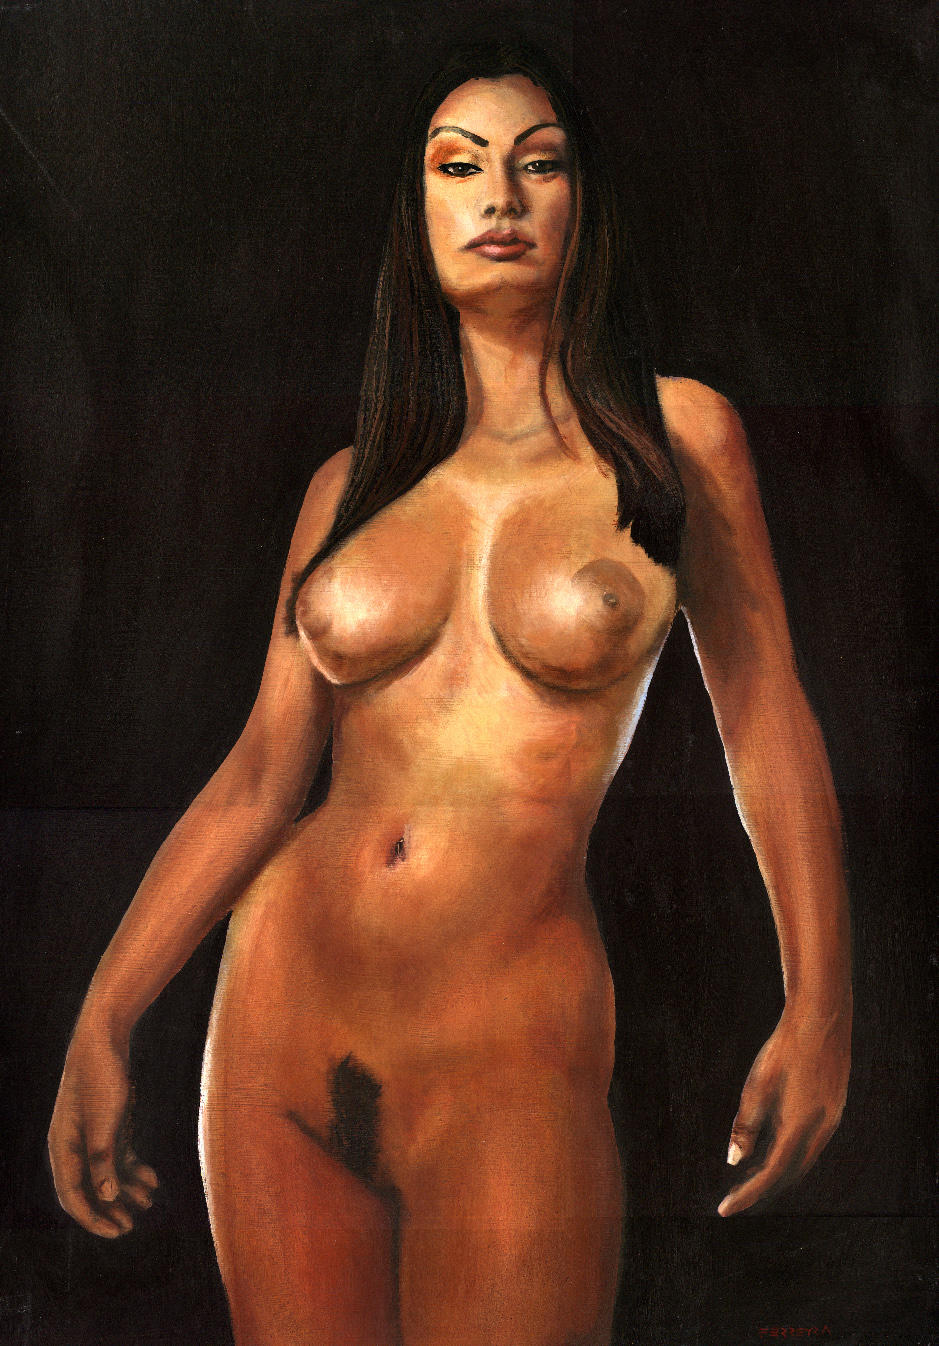 Remarkable, amusing Female vampire naked consider